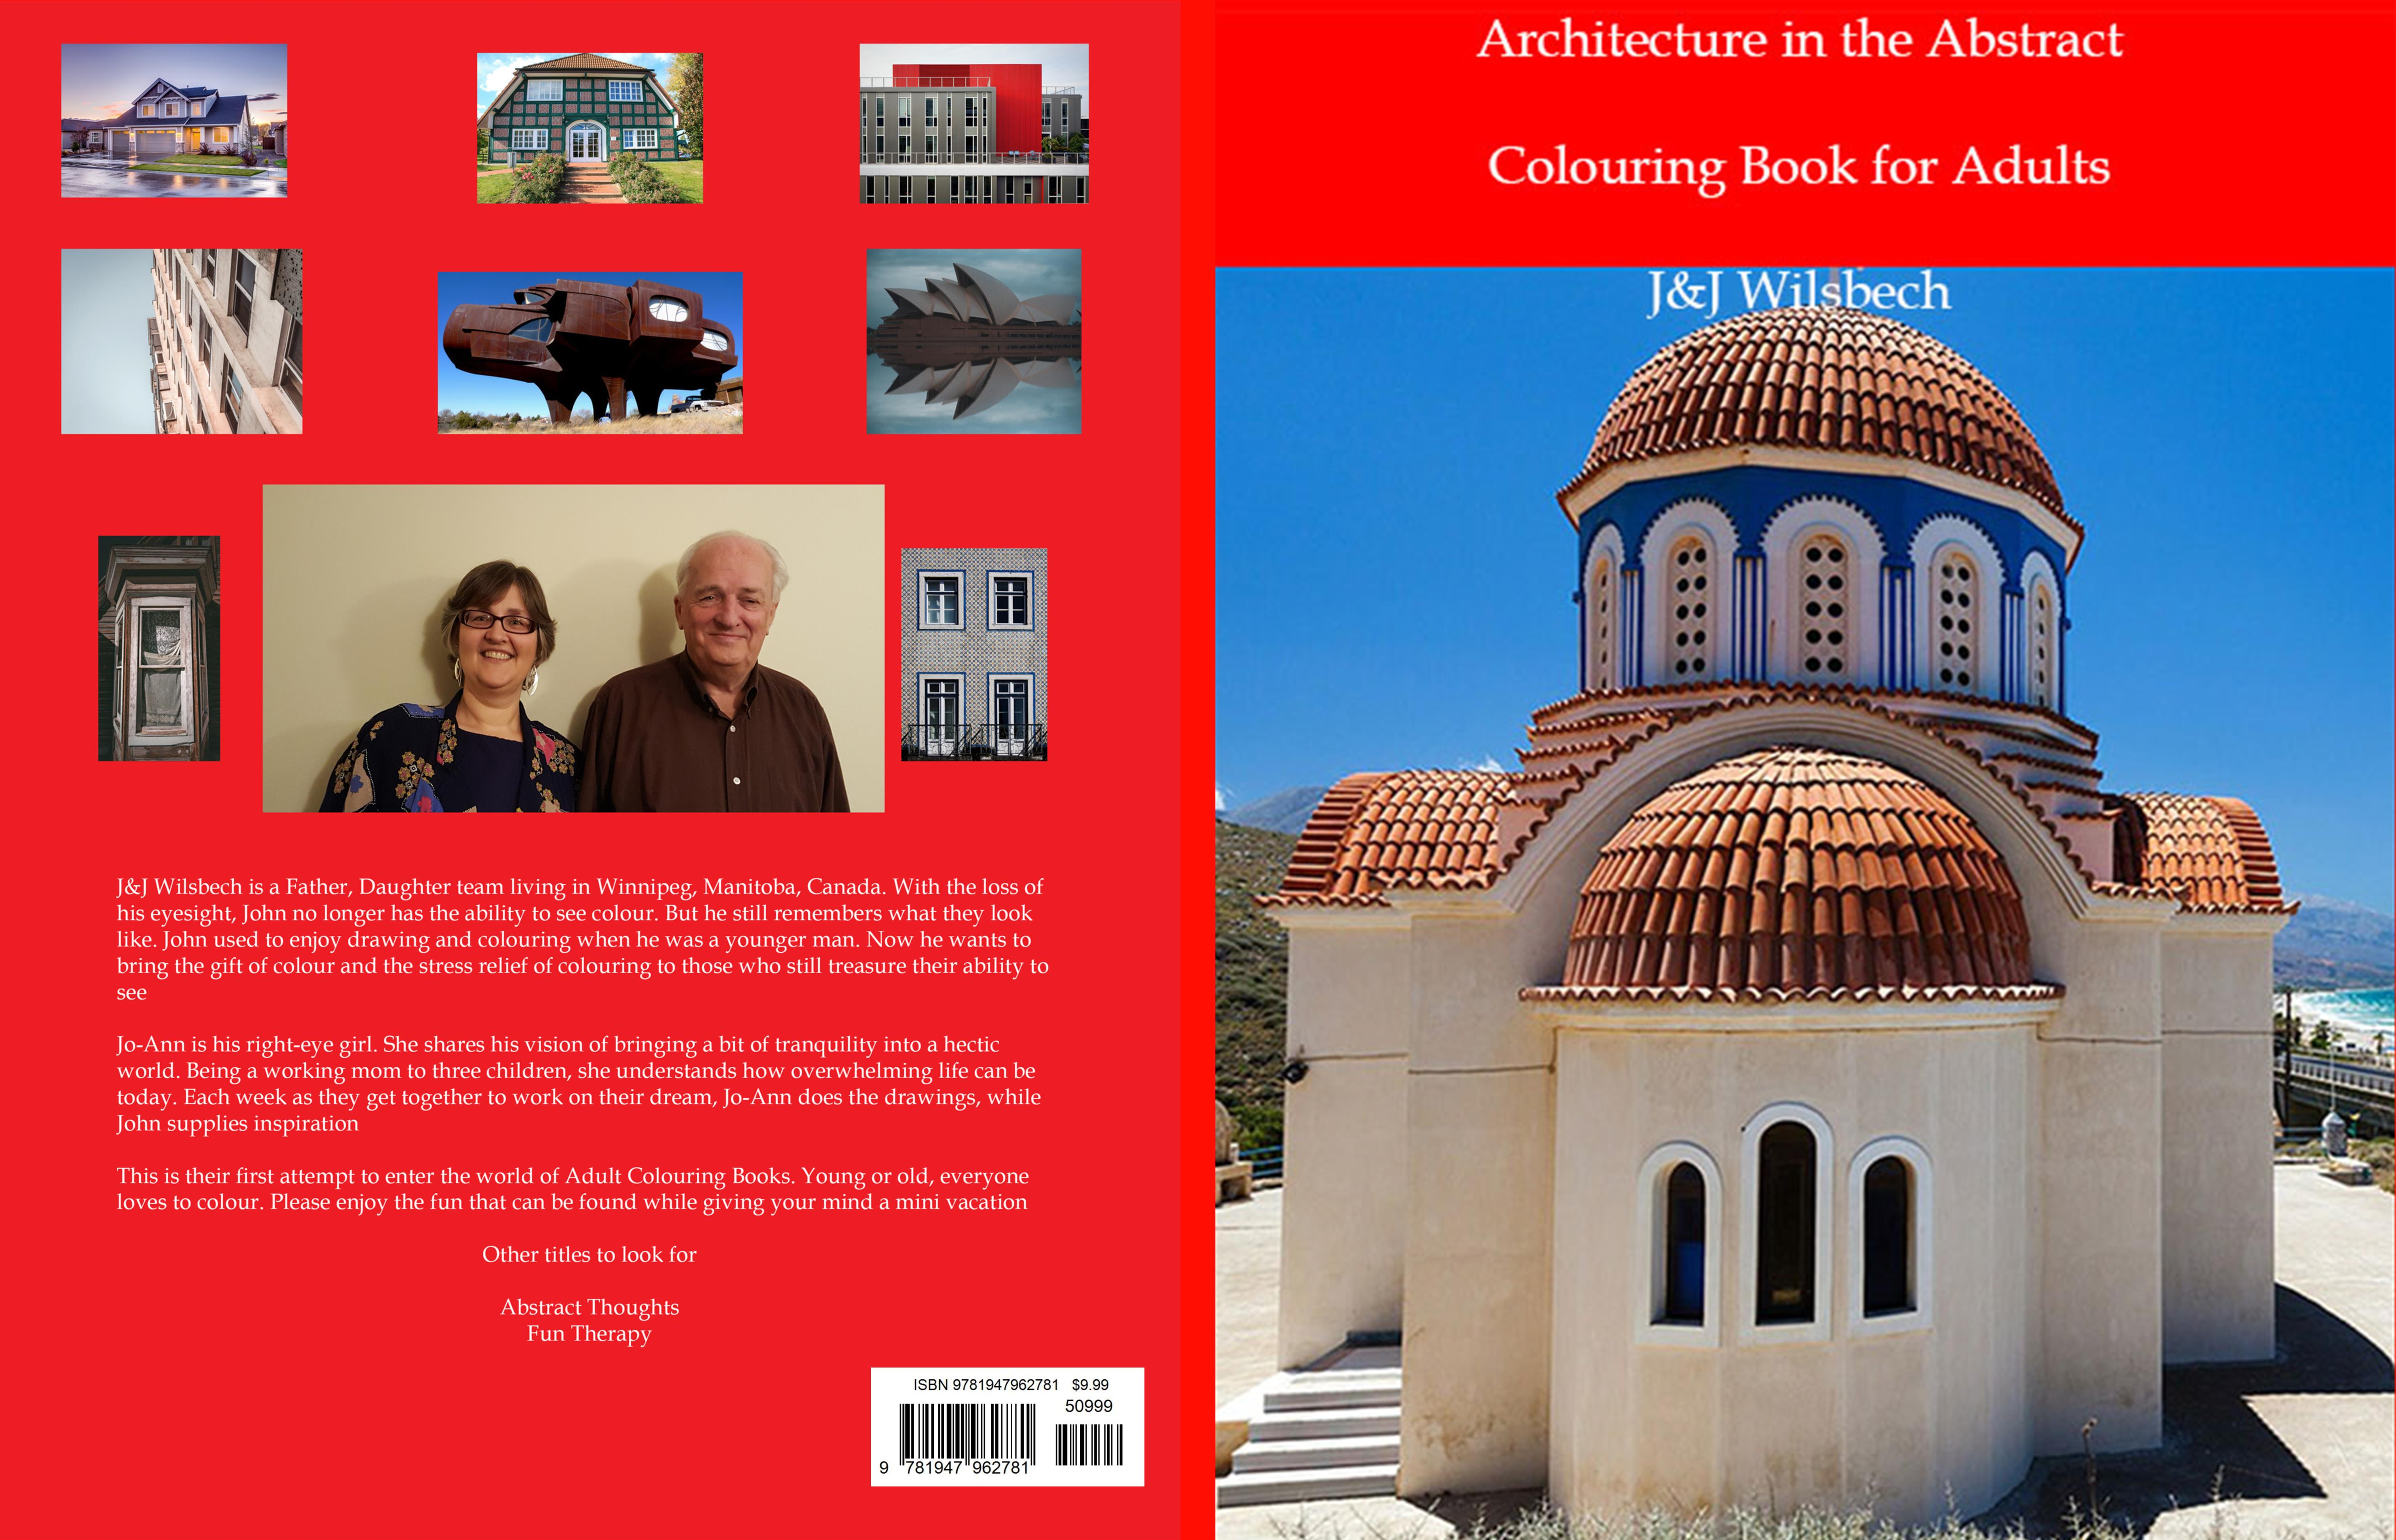 Architecture in the Abstract cover image